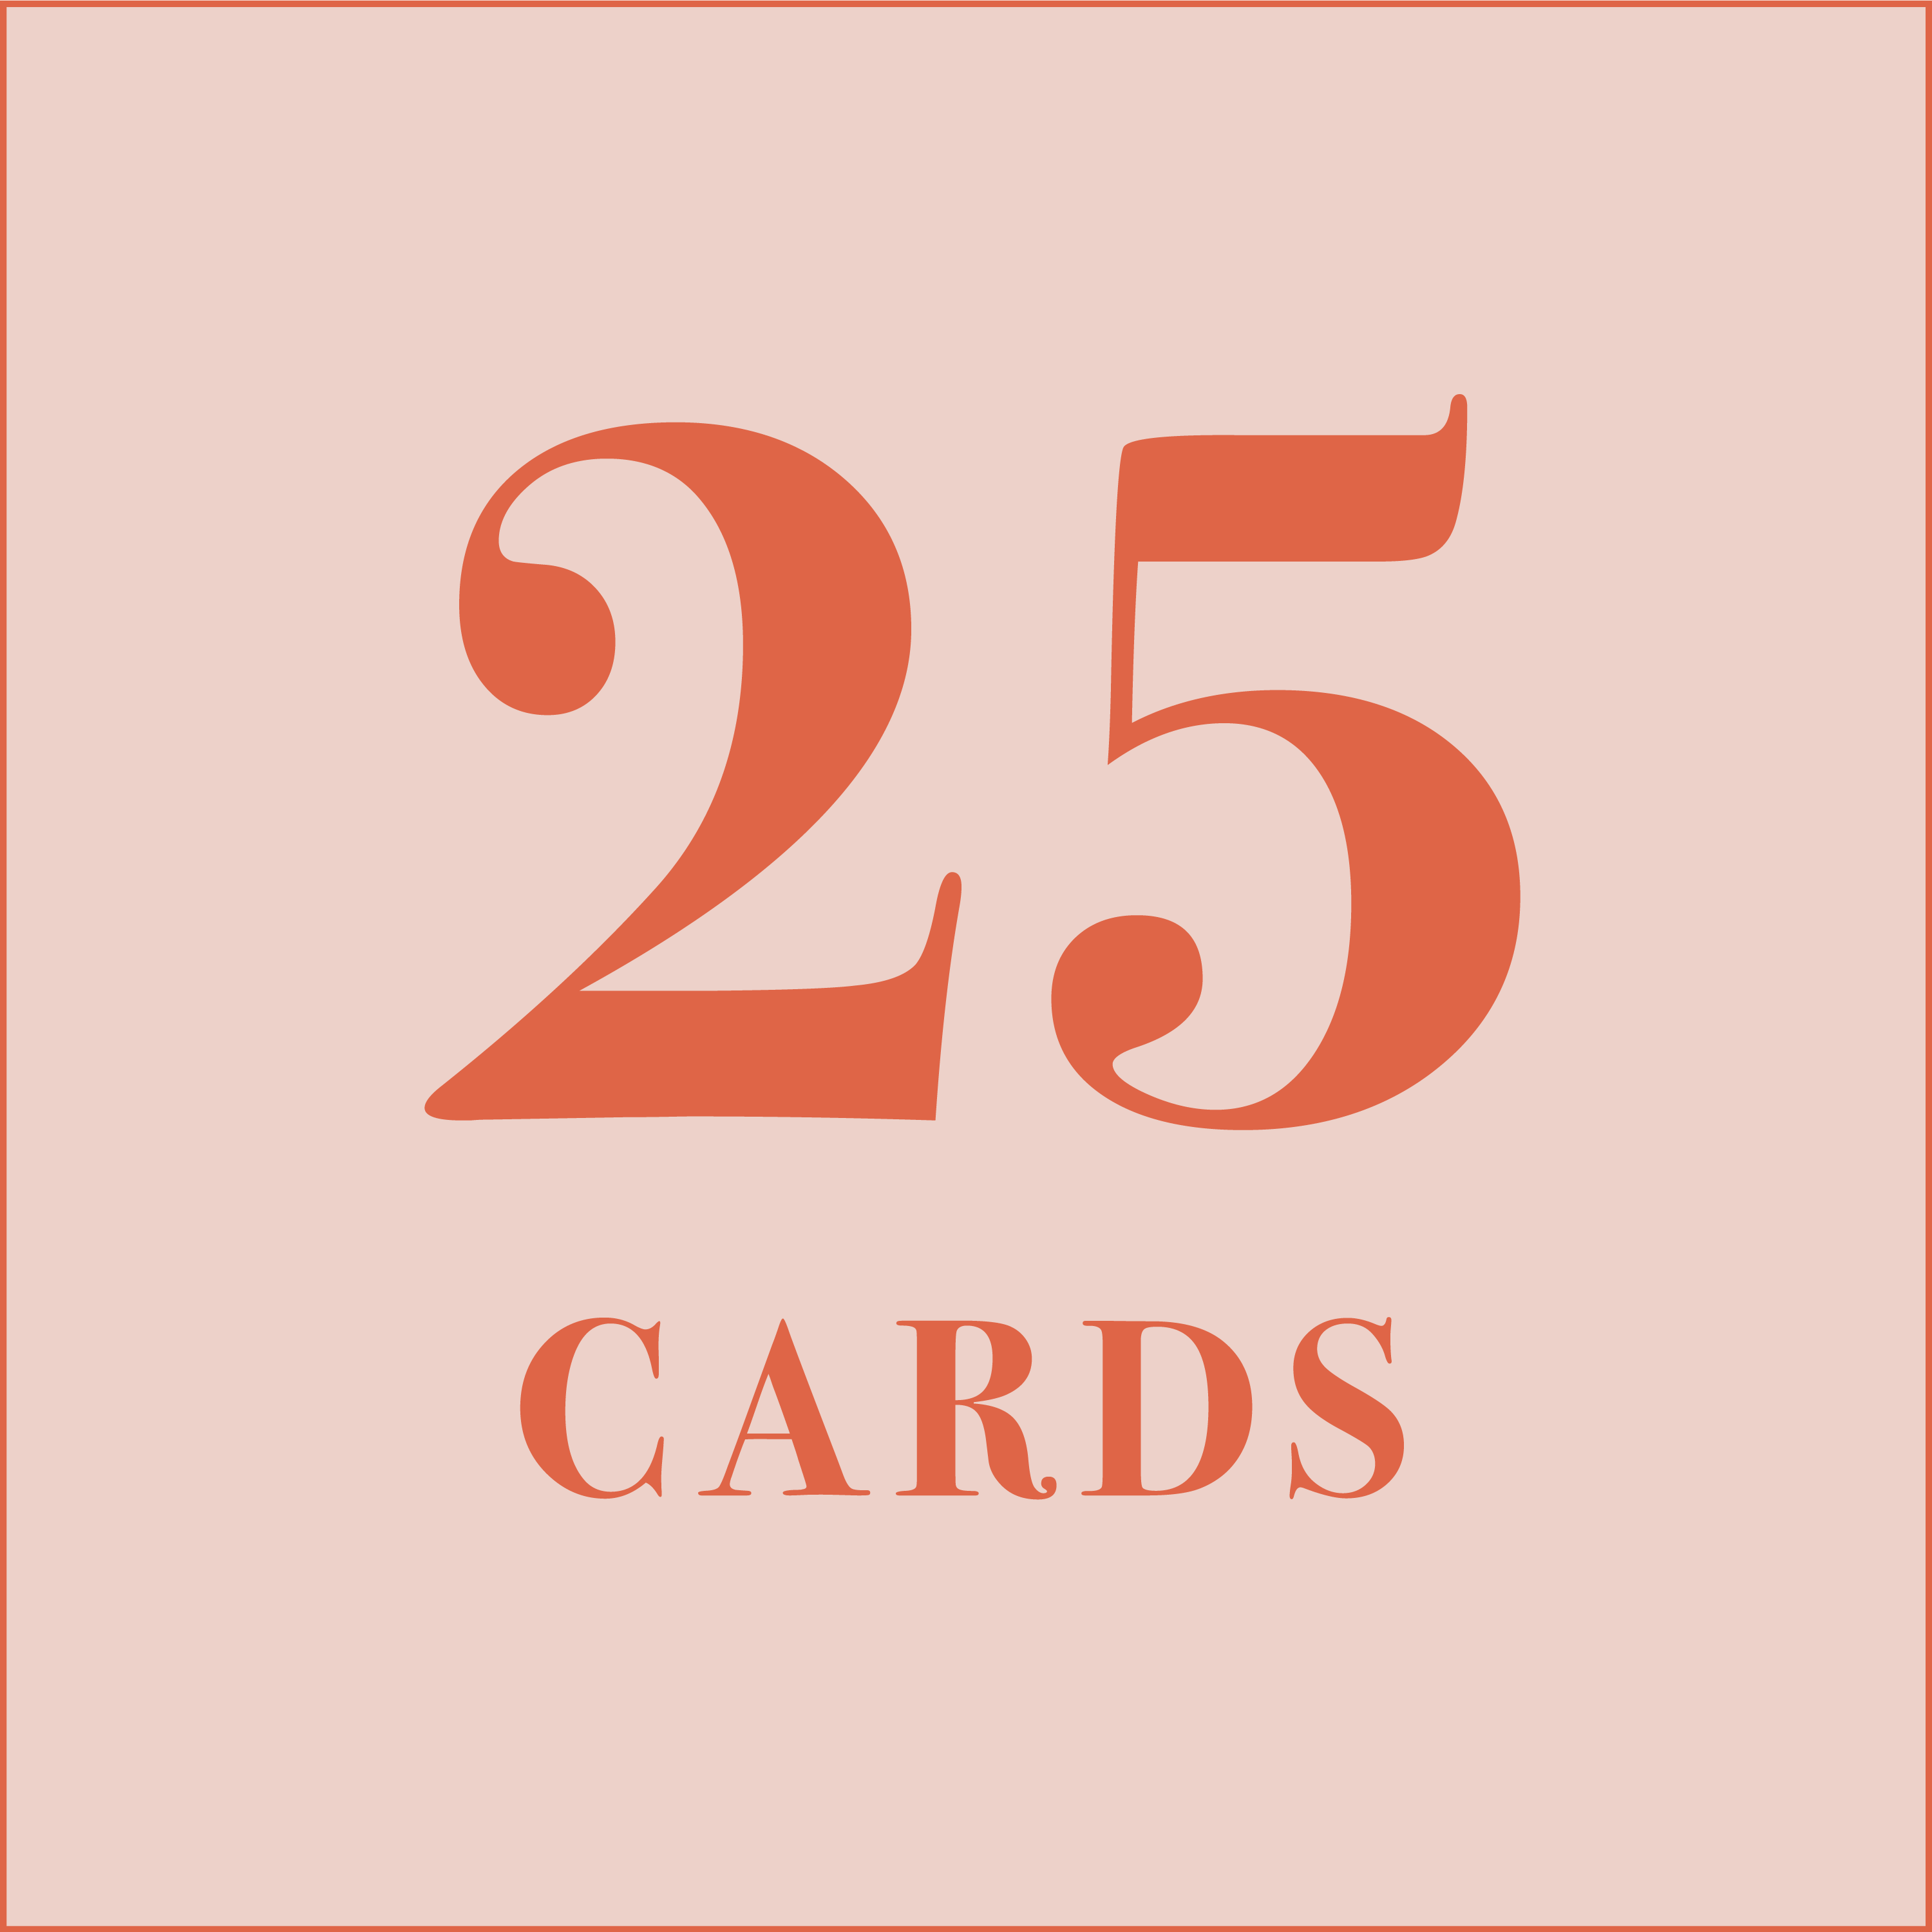 25 cards